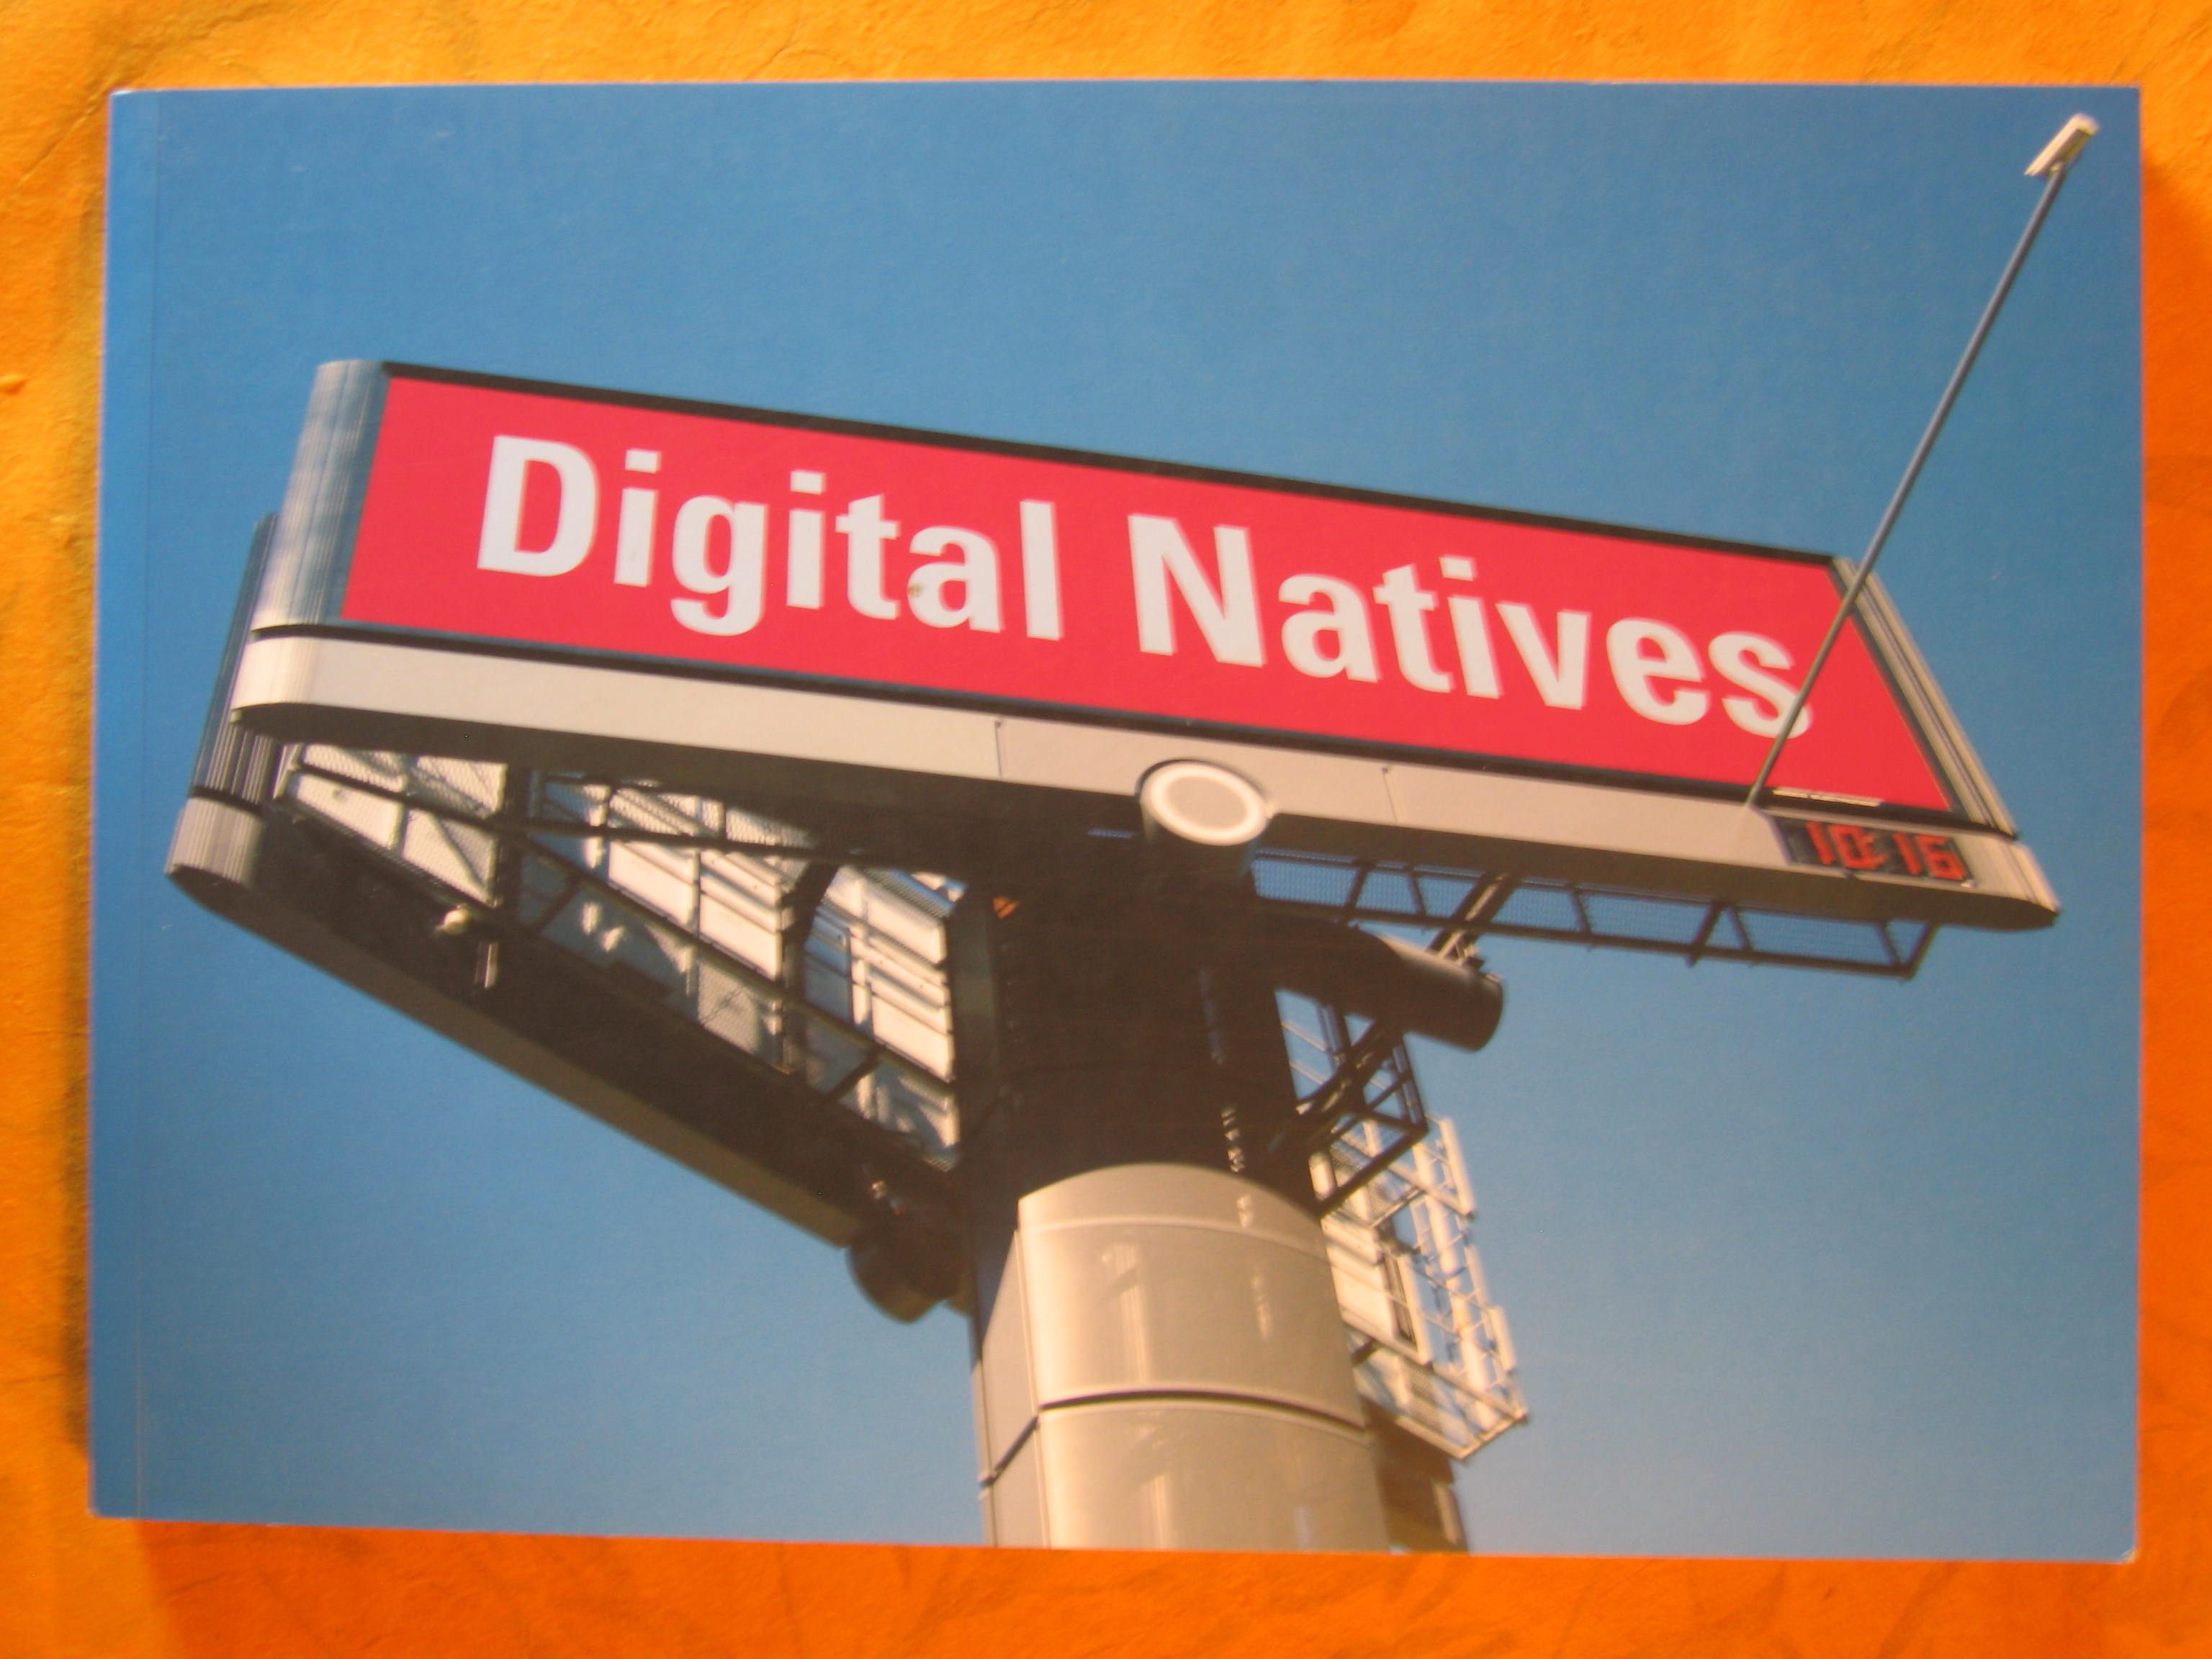 Image for Digital Natives: Other Sights for Artists' Projects